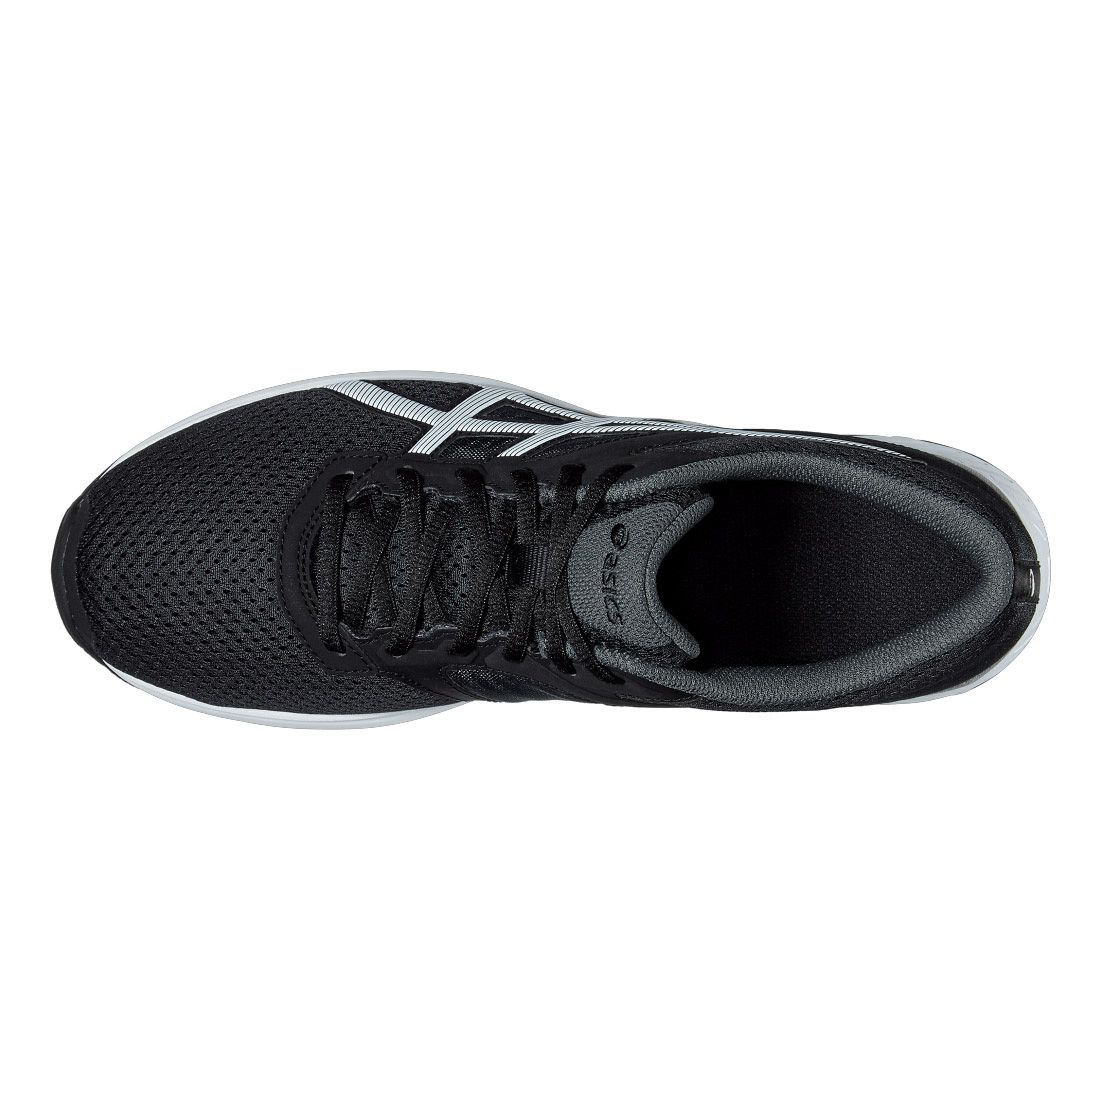 Golf Shoes White Top Black Sides